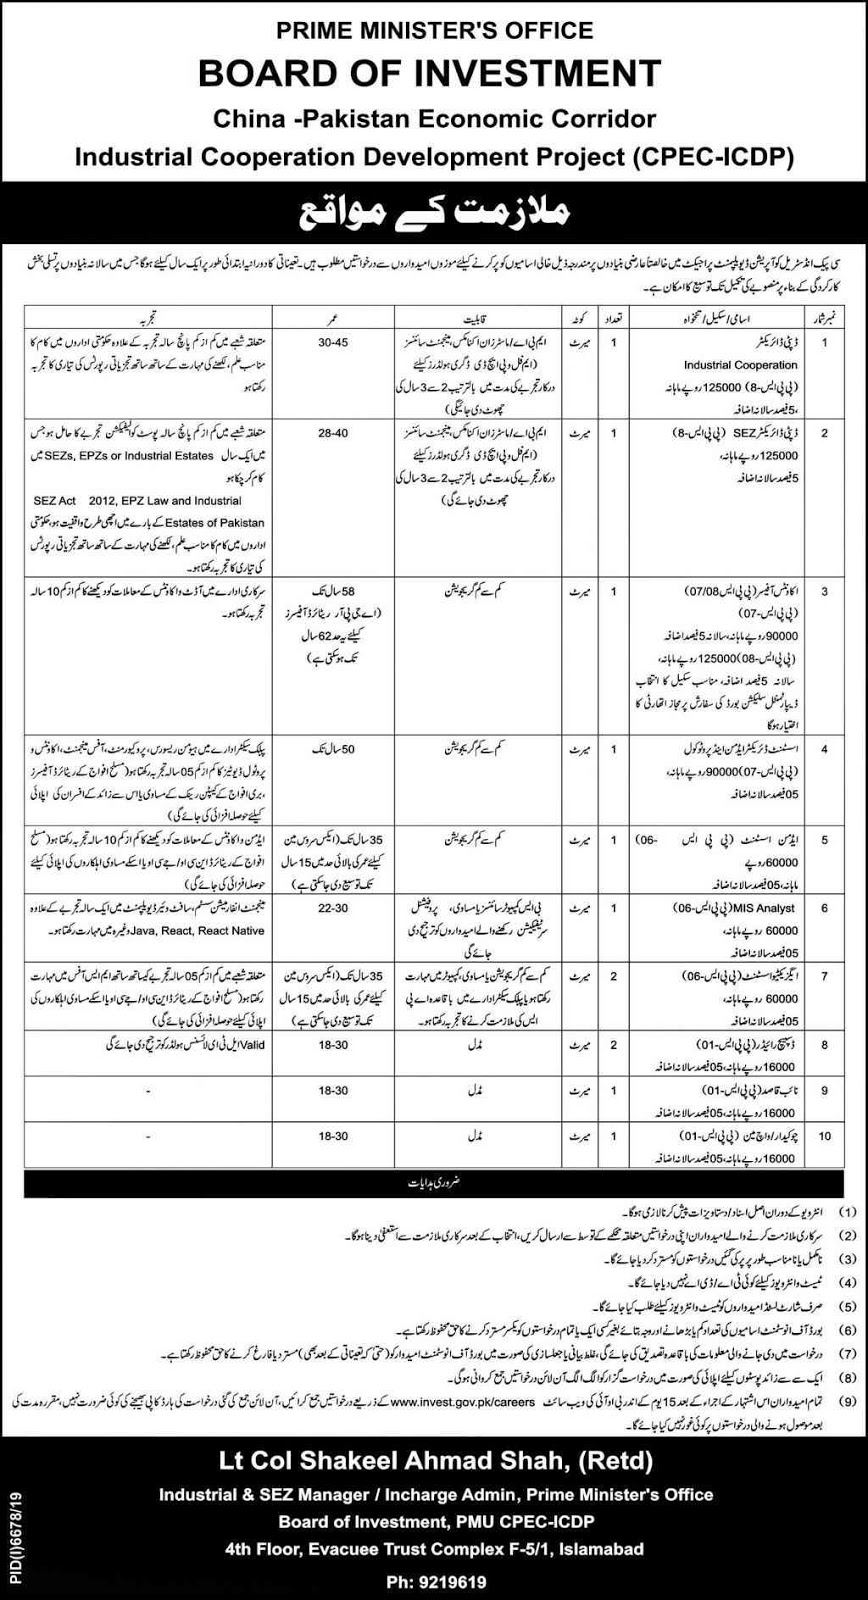 Latest Board Of Investment Prime Minister Office (CPEC-ICDP) Jobs 2020